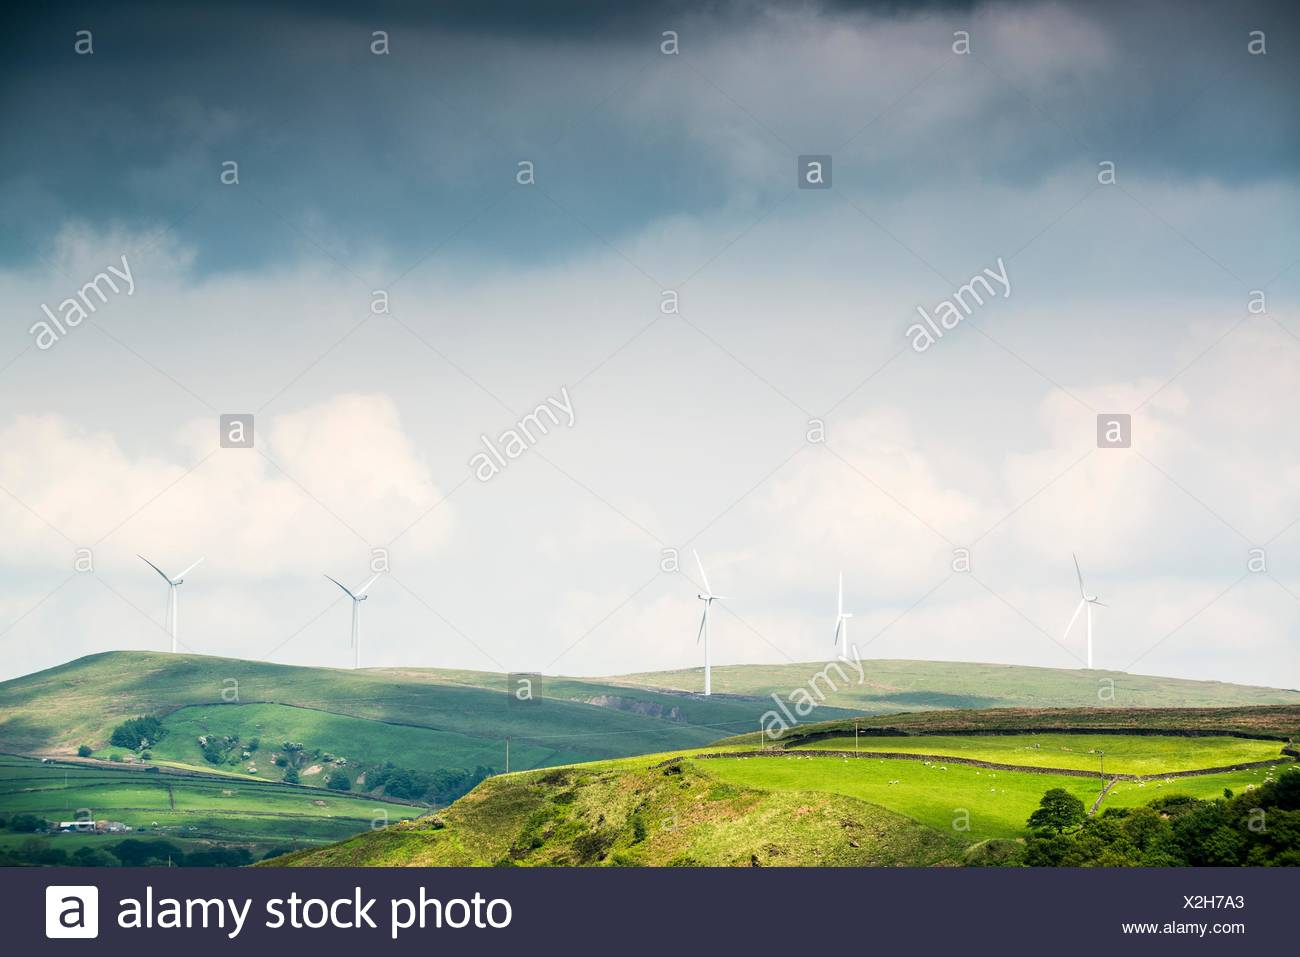 View of wind turbines on moorland hills, UK - Stock Image